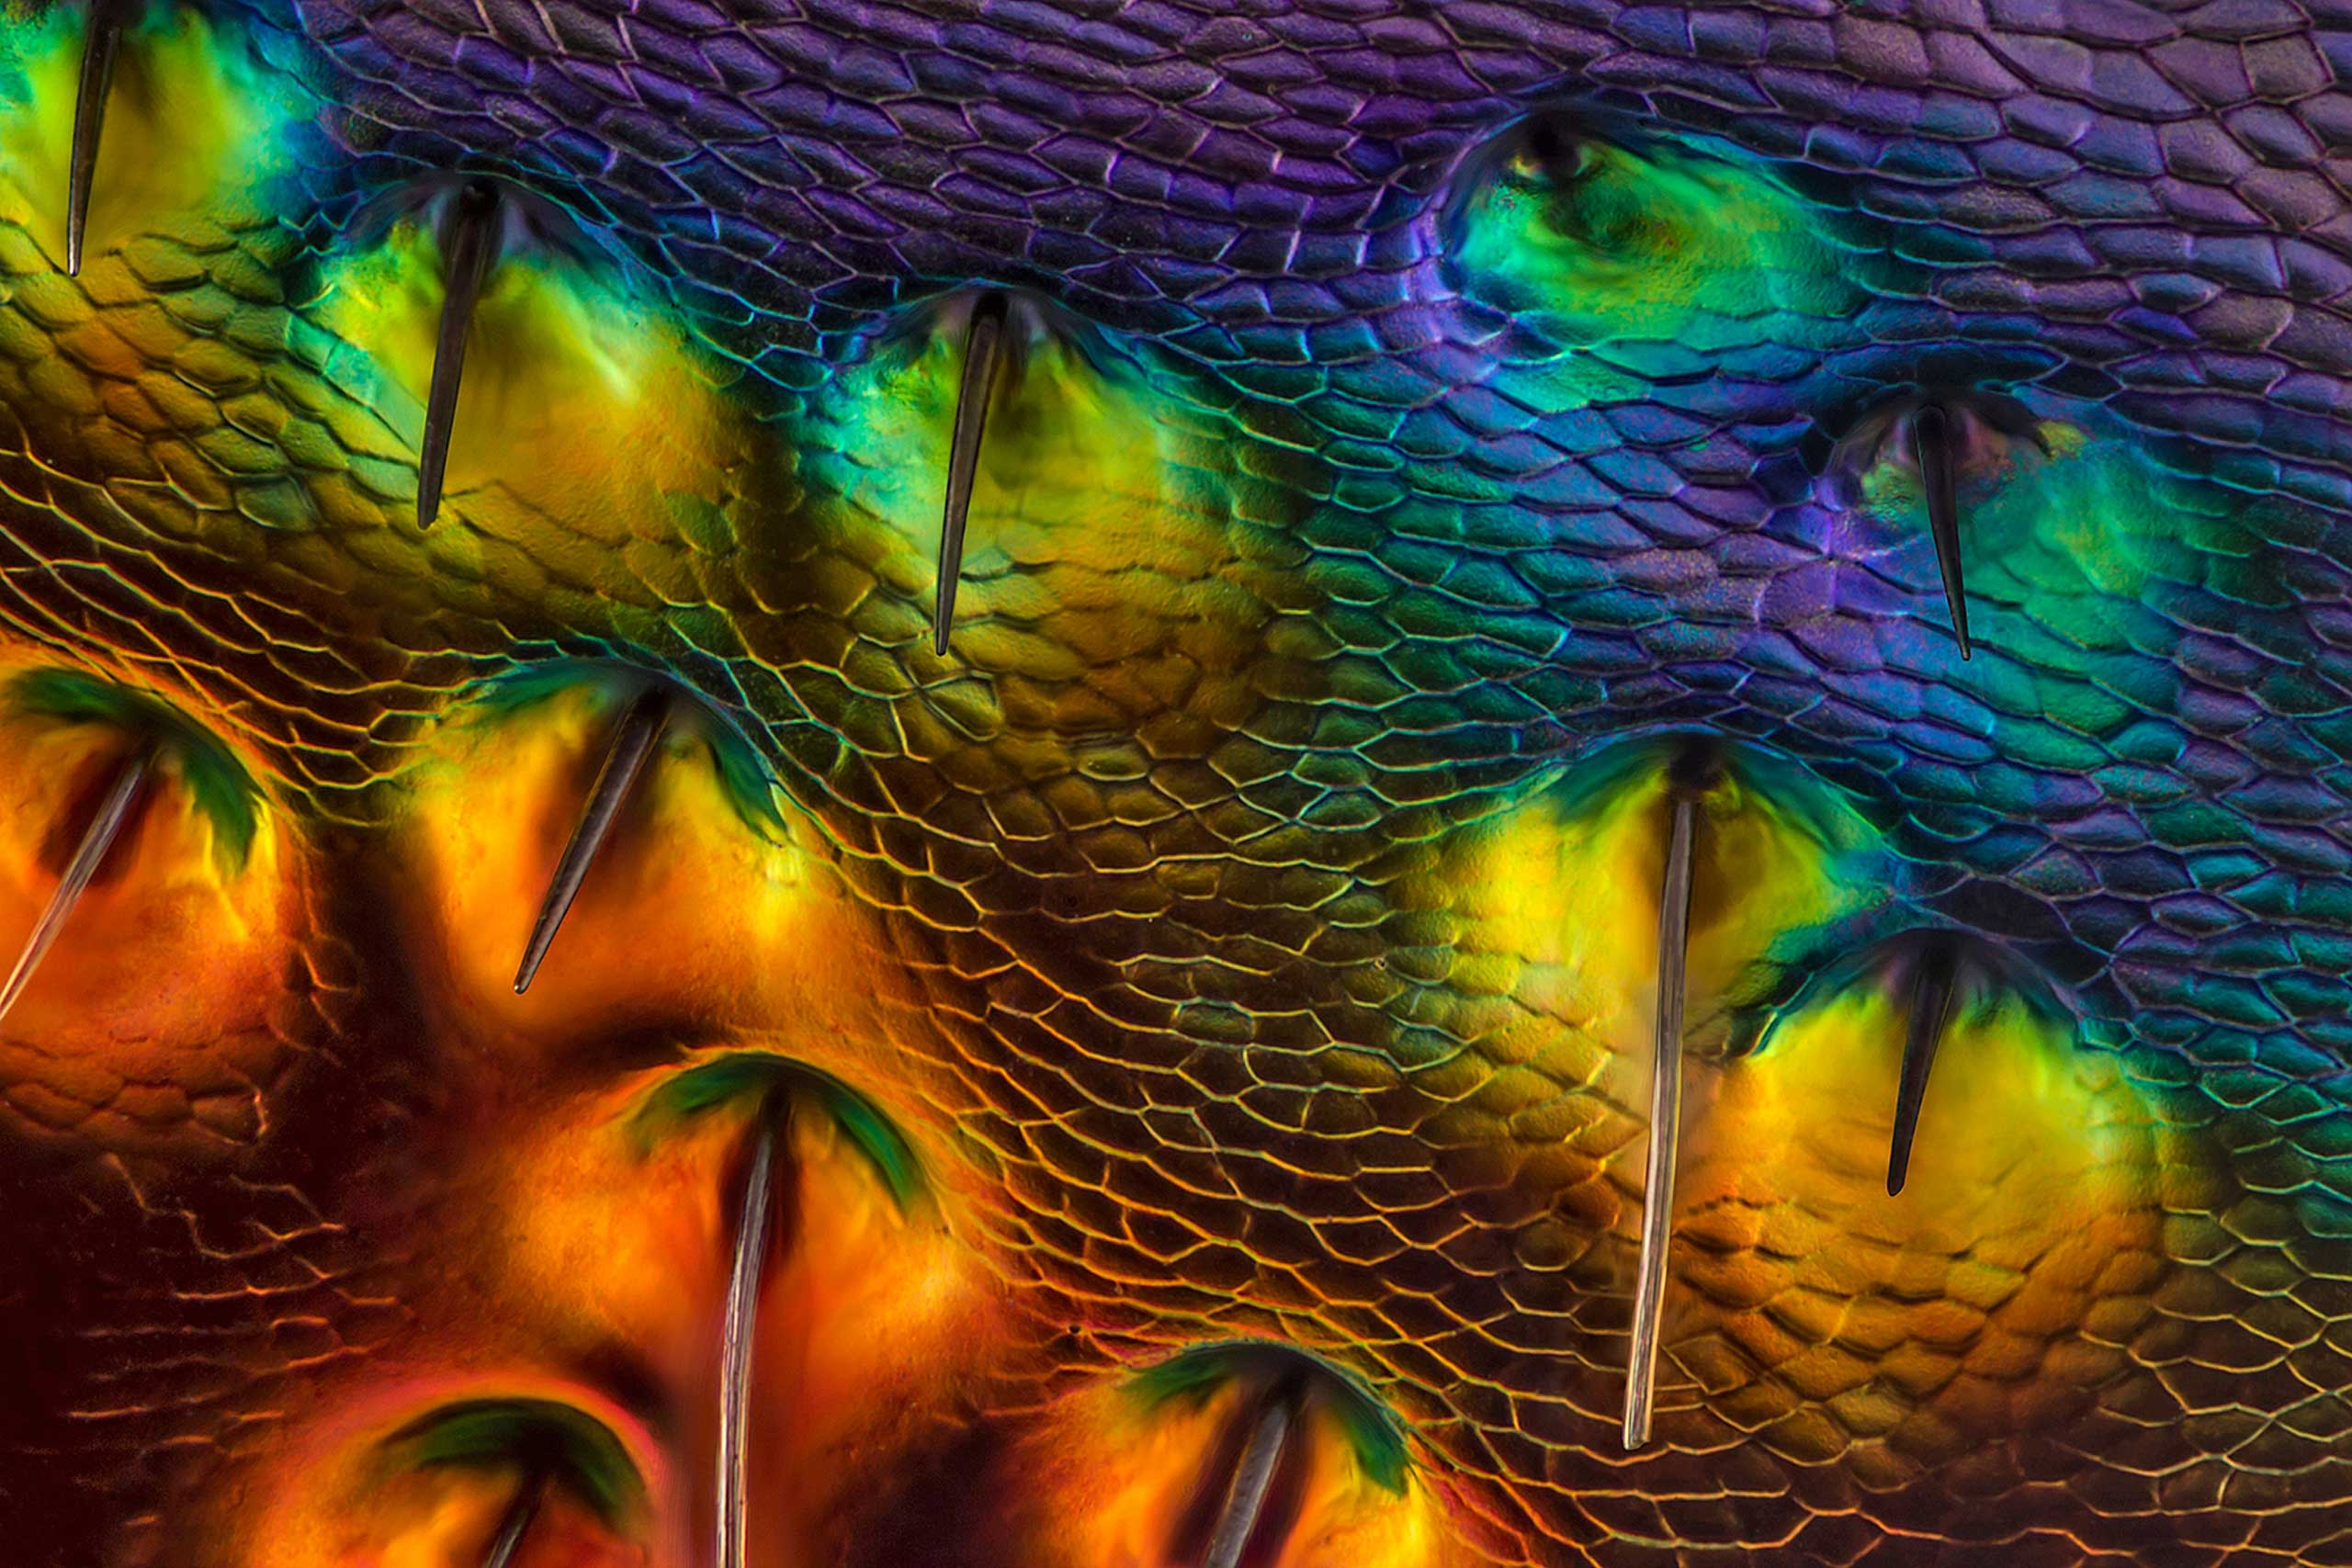 A Chrysochroa buqueti (jewel beetle) carapace, near eye at 450x magnification.